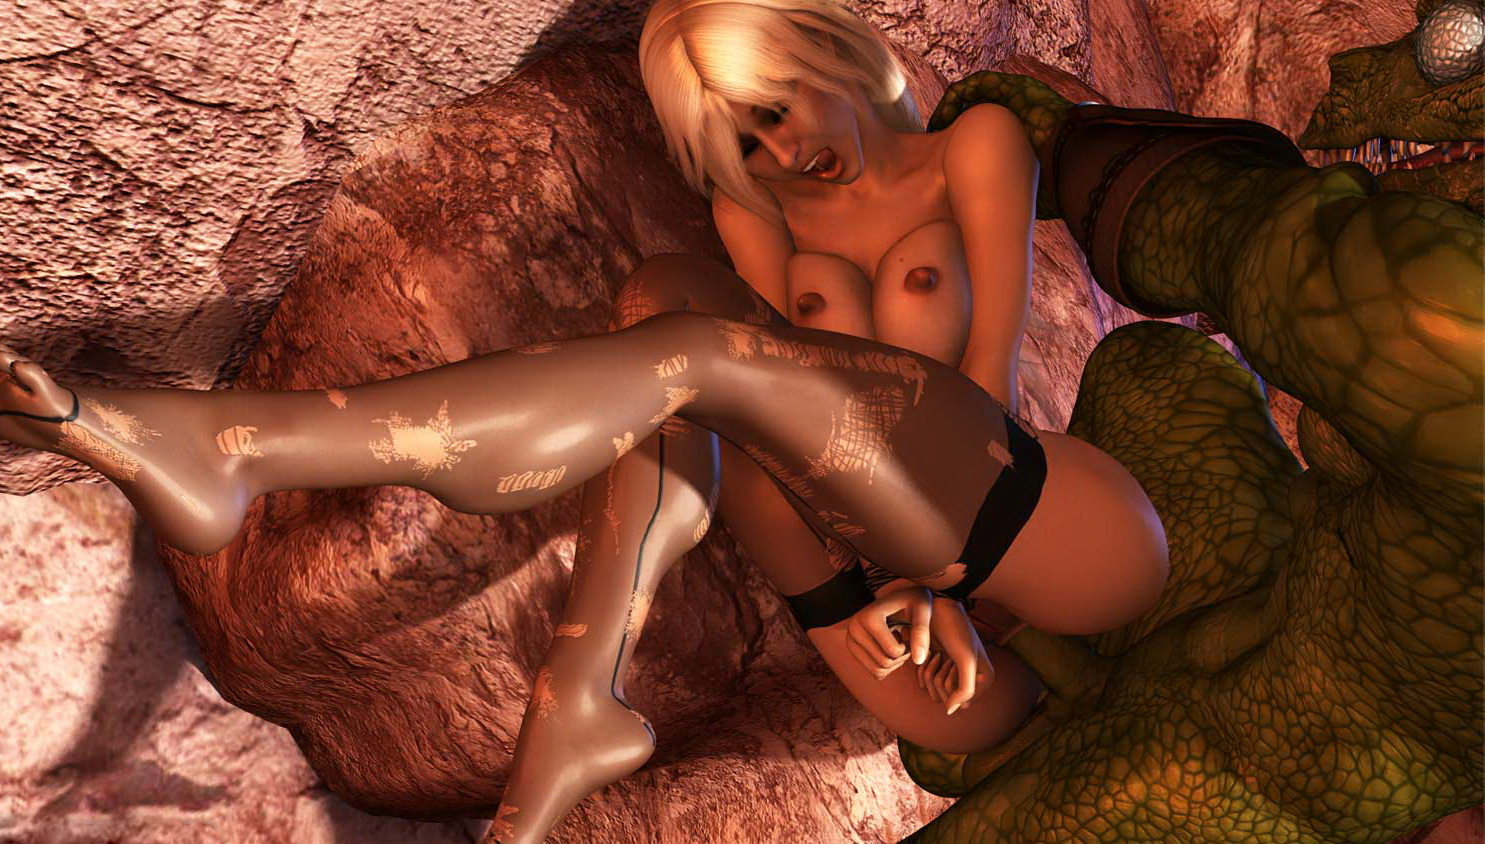 3d monster porn images net erotica photo